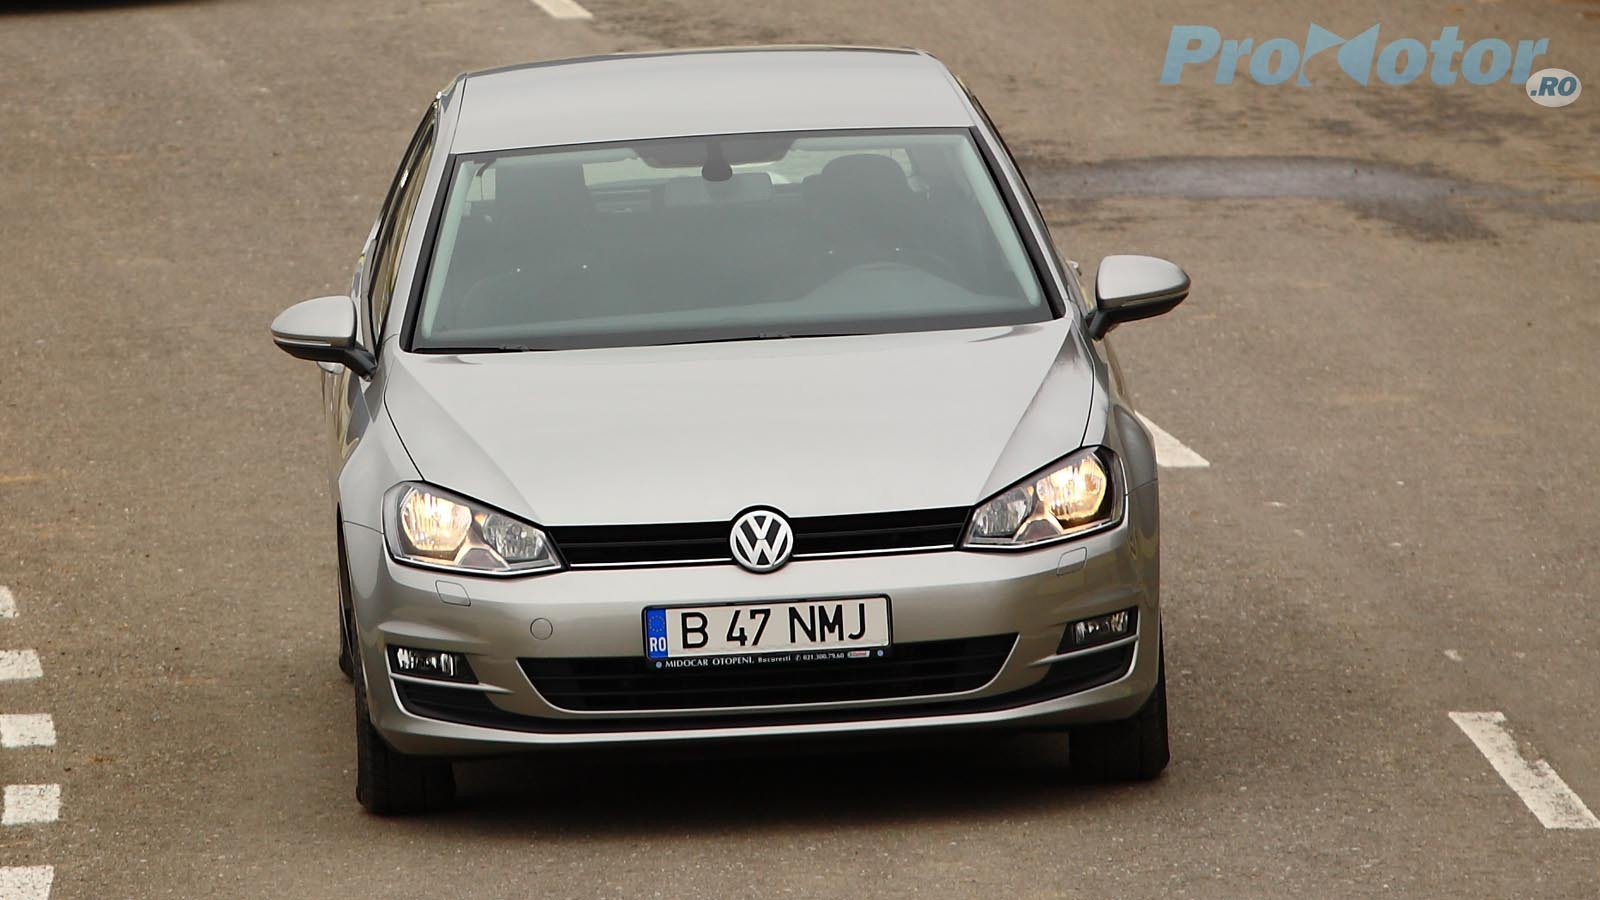 imagini test vw golf 7 1 6 tdi 105 cp golf ul diesel accesibil. Black Bedroom Furniture Sets. Home Design Ideas